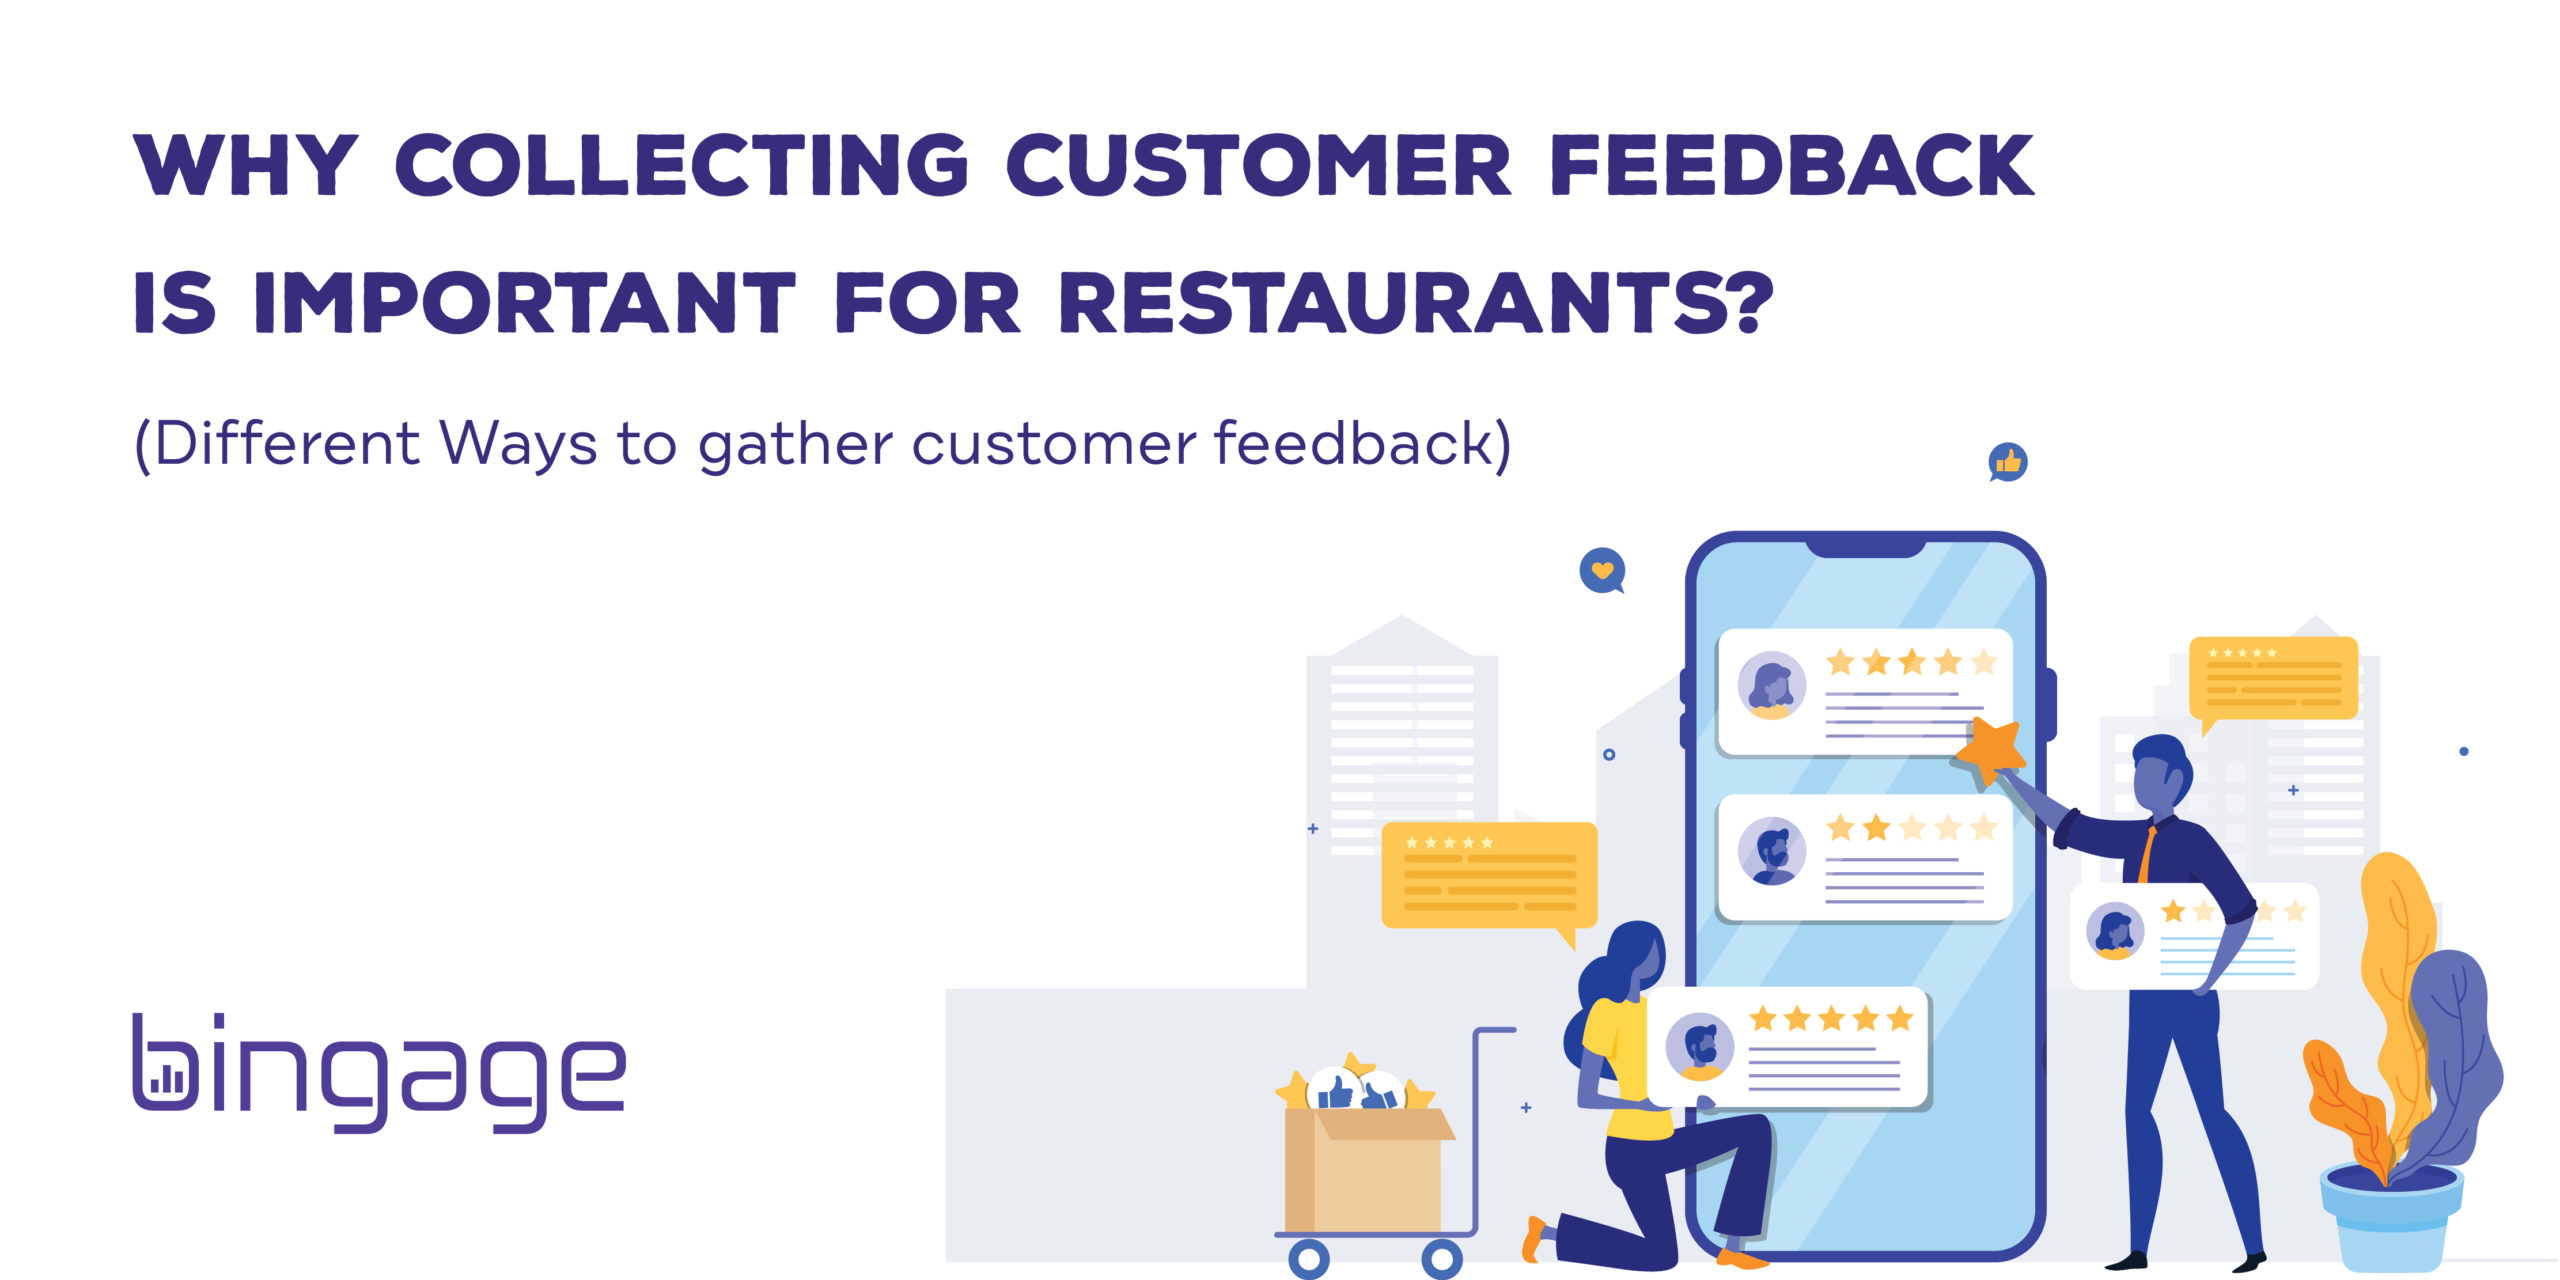 Why Collecting Customer Feedback is Important for Restaurants?